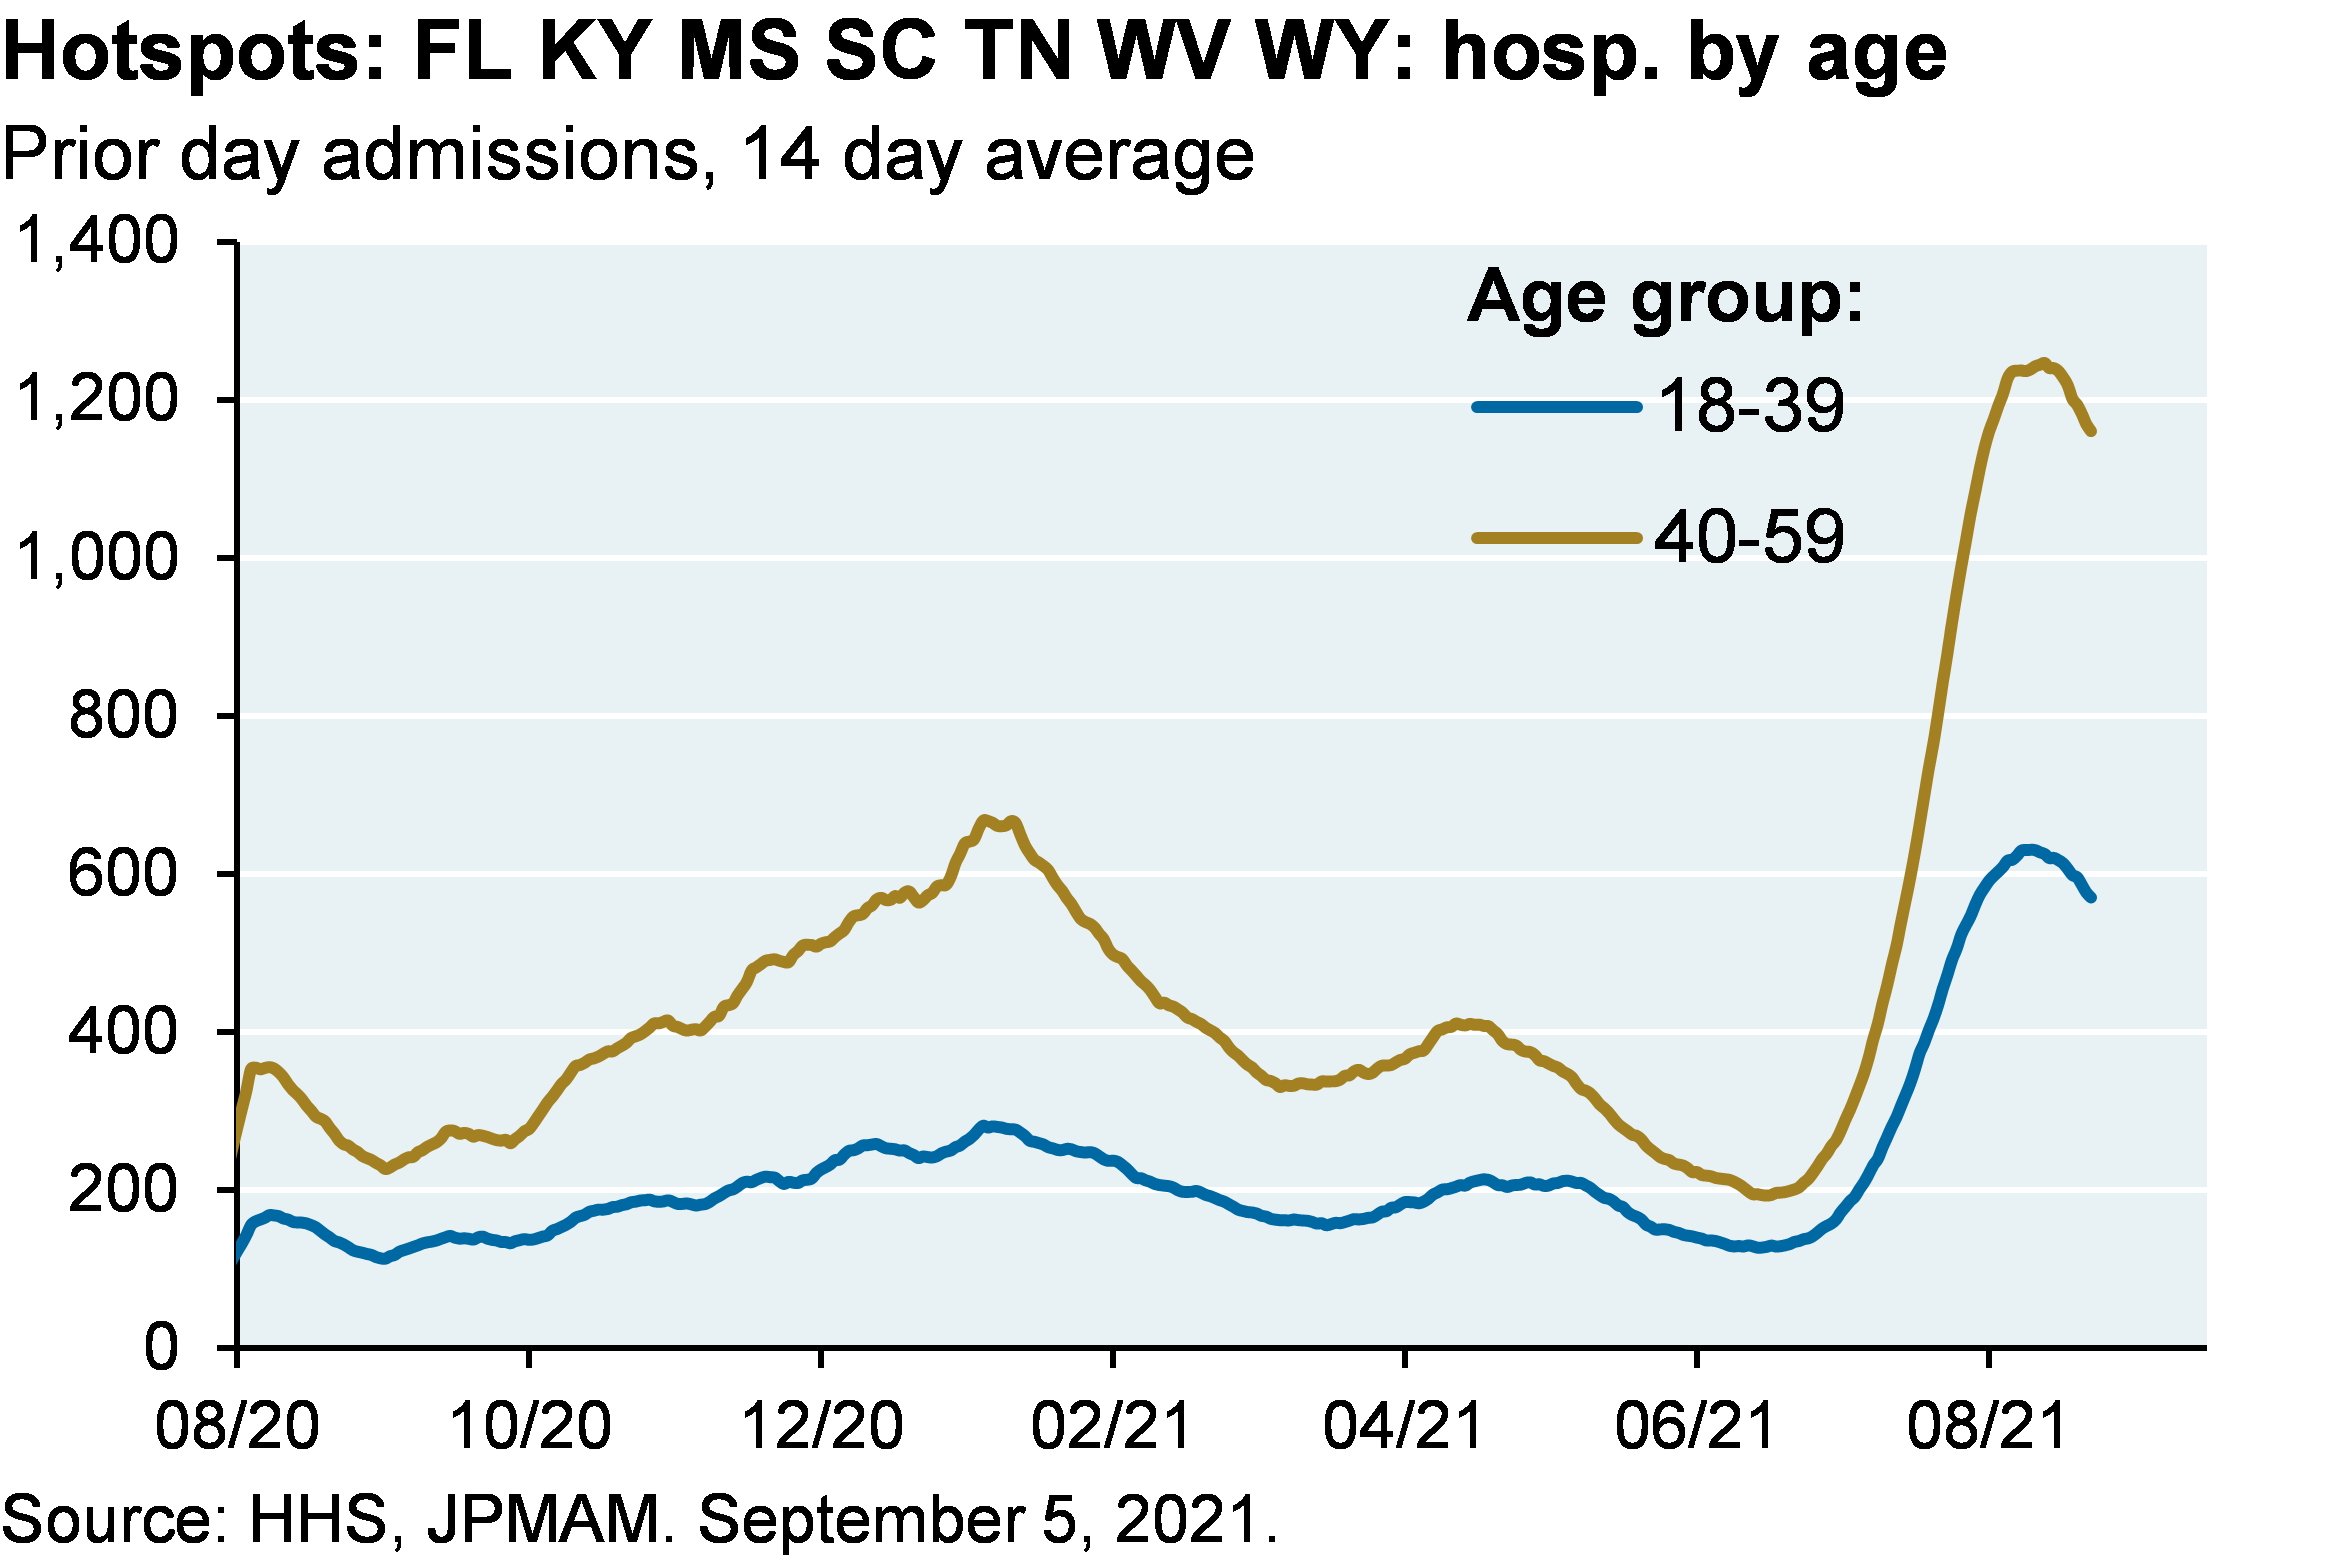 Line chart shows prior day COVID hospital admissions in US COVID hotspot states by 18-39 and 40-59 age groups. Prior day admissions for the 40-59 age group have risen to about 1,600, which is much higher than the previous peak of about 900 in January. Prior day admissions for the 18-39 age group have risen to about 800, which is also much higher than the small increase to almost 400 in January.